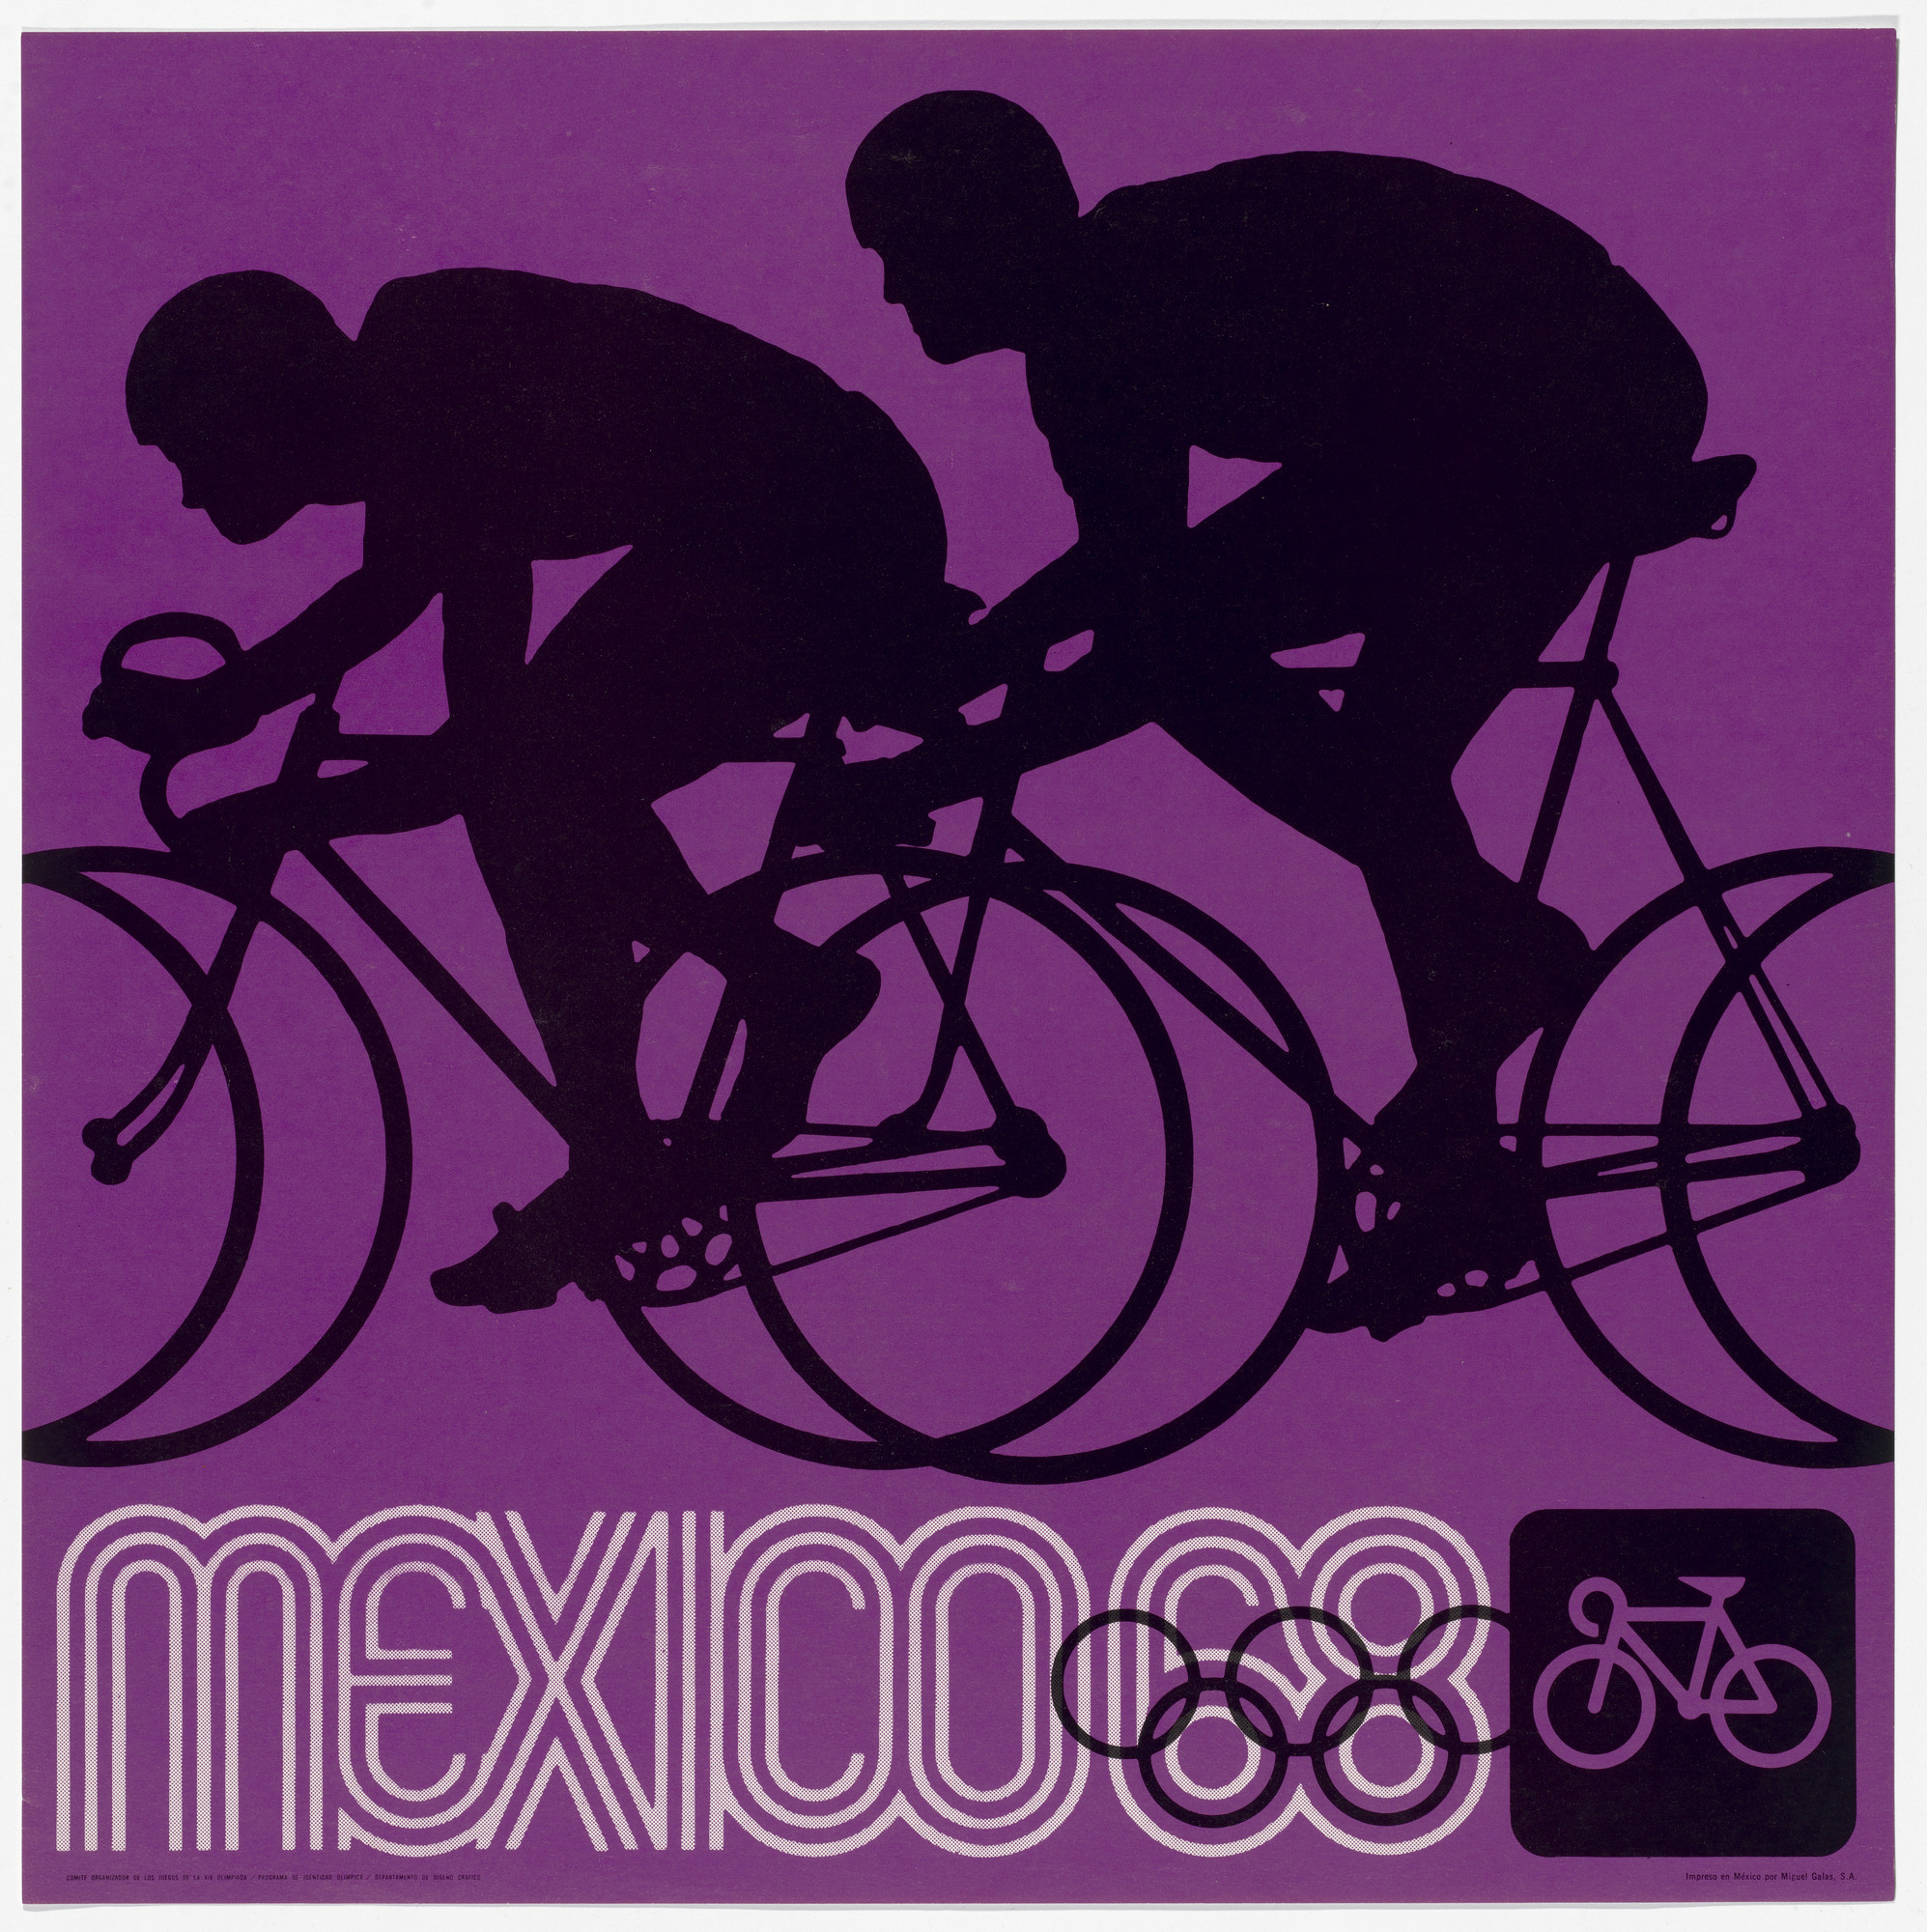 Lance Wyman, Department of Publications and Urban Design, Organizing Committee of the XIX Olympiad. Mexico City 1968 Olympics: Cycling. c. 1968